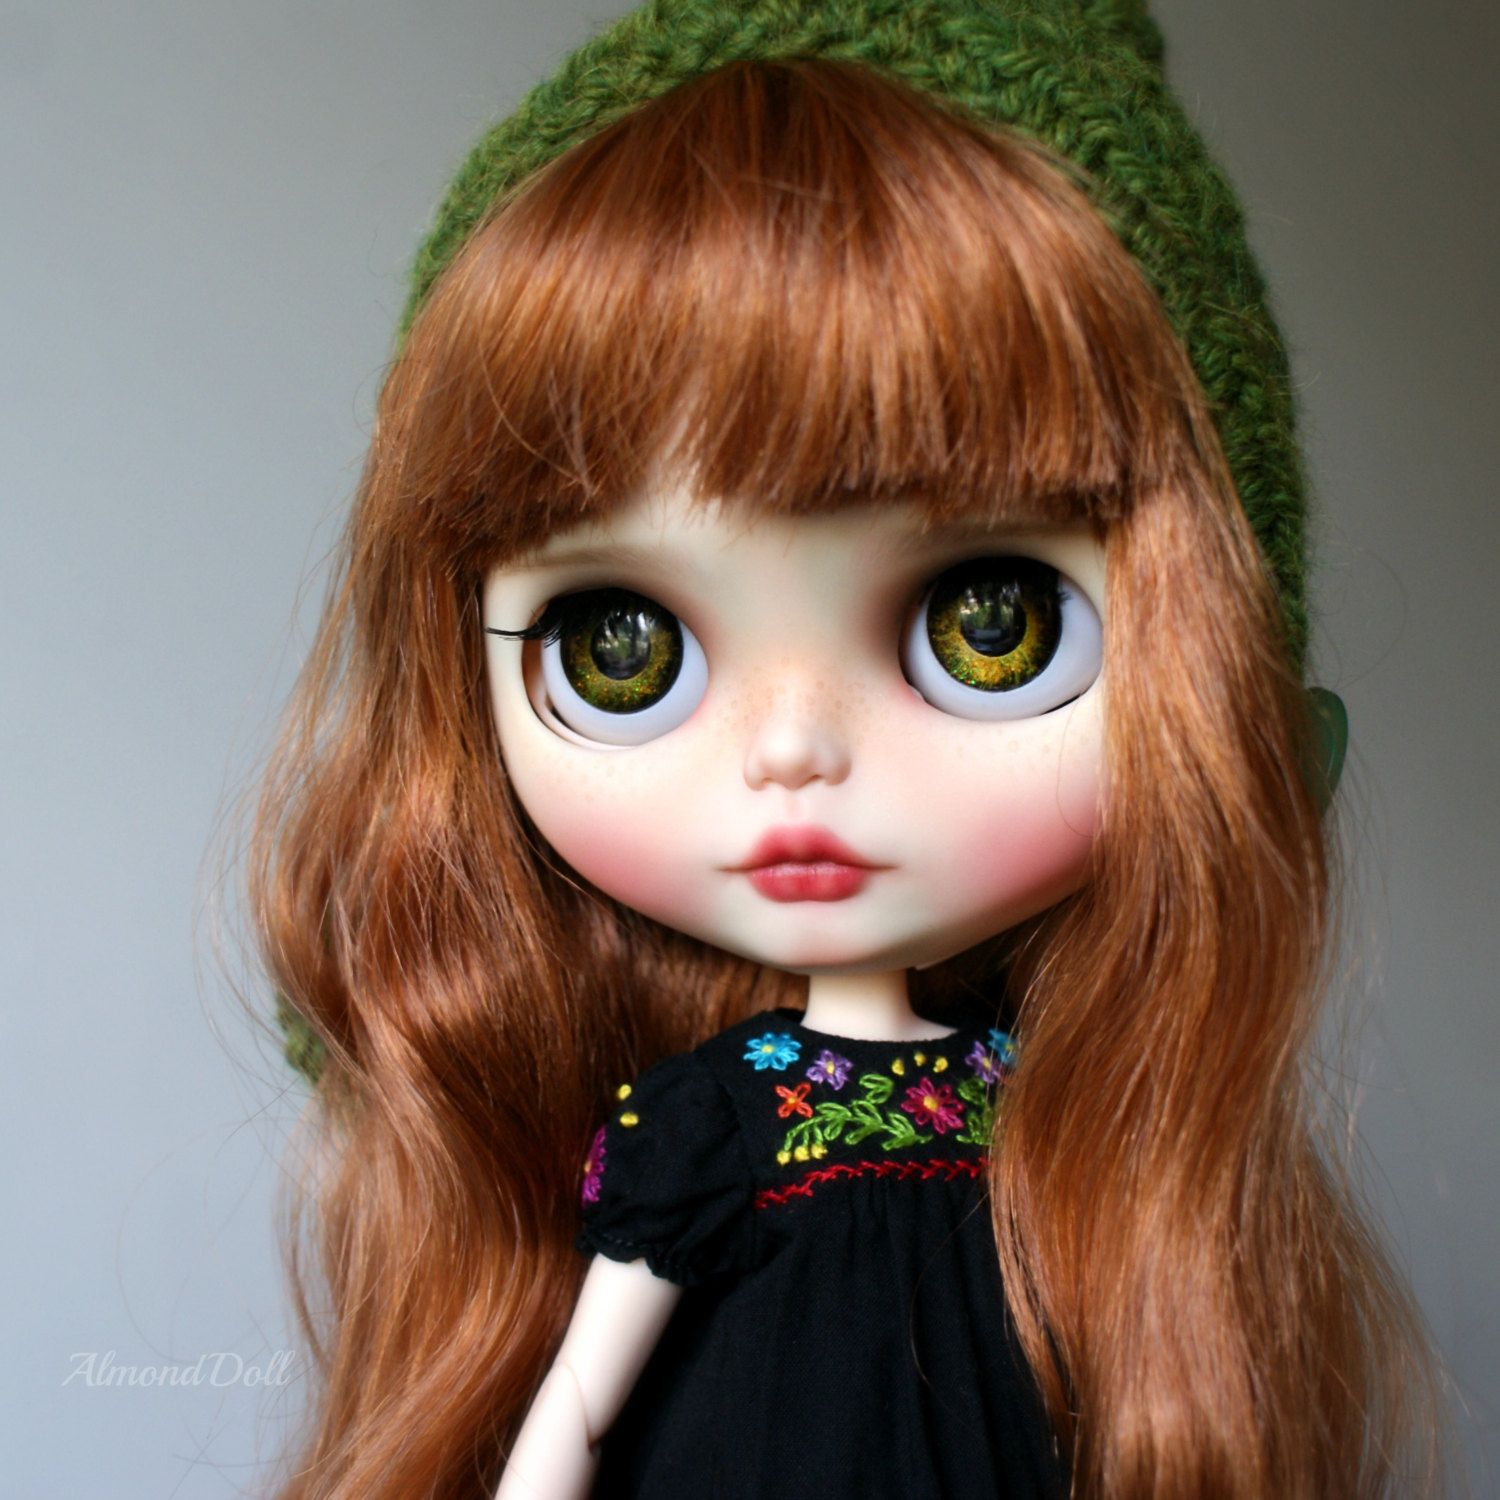 Kaylee-custom ooak blythe doll poupée d'art unique par